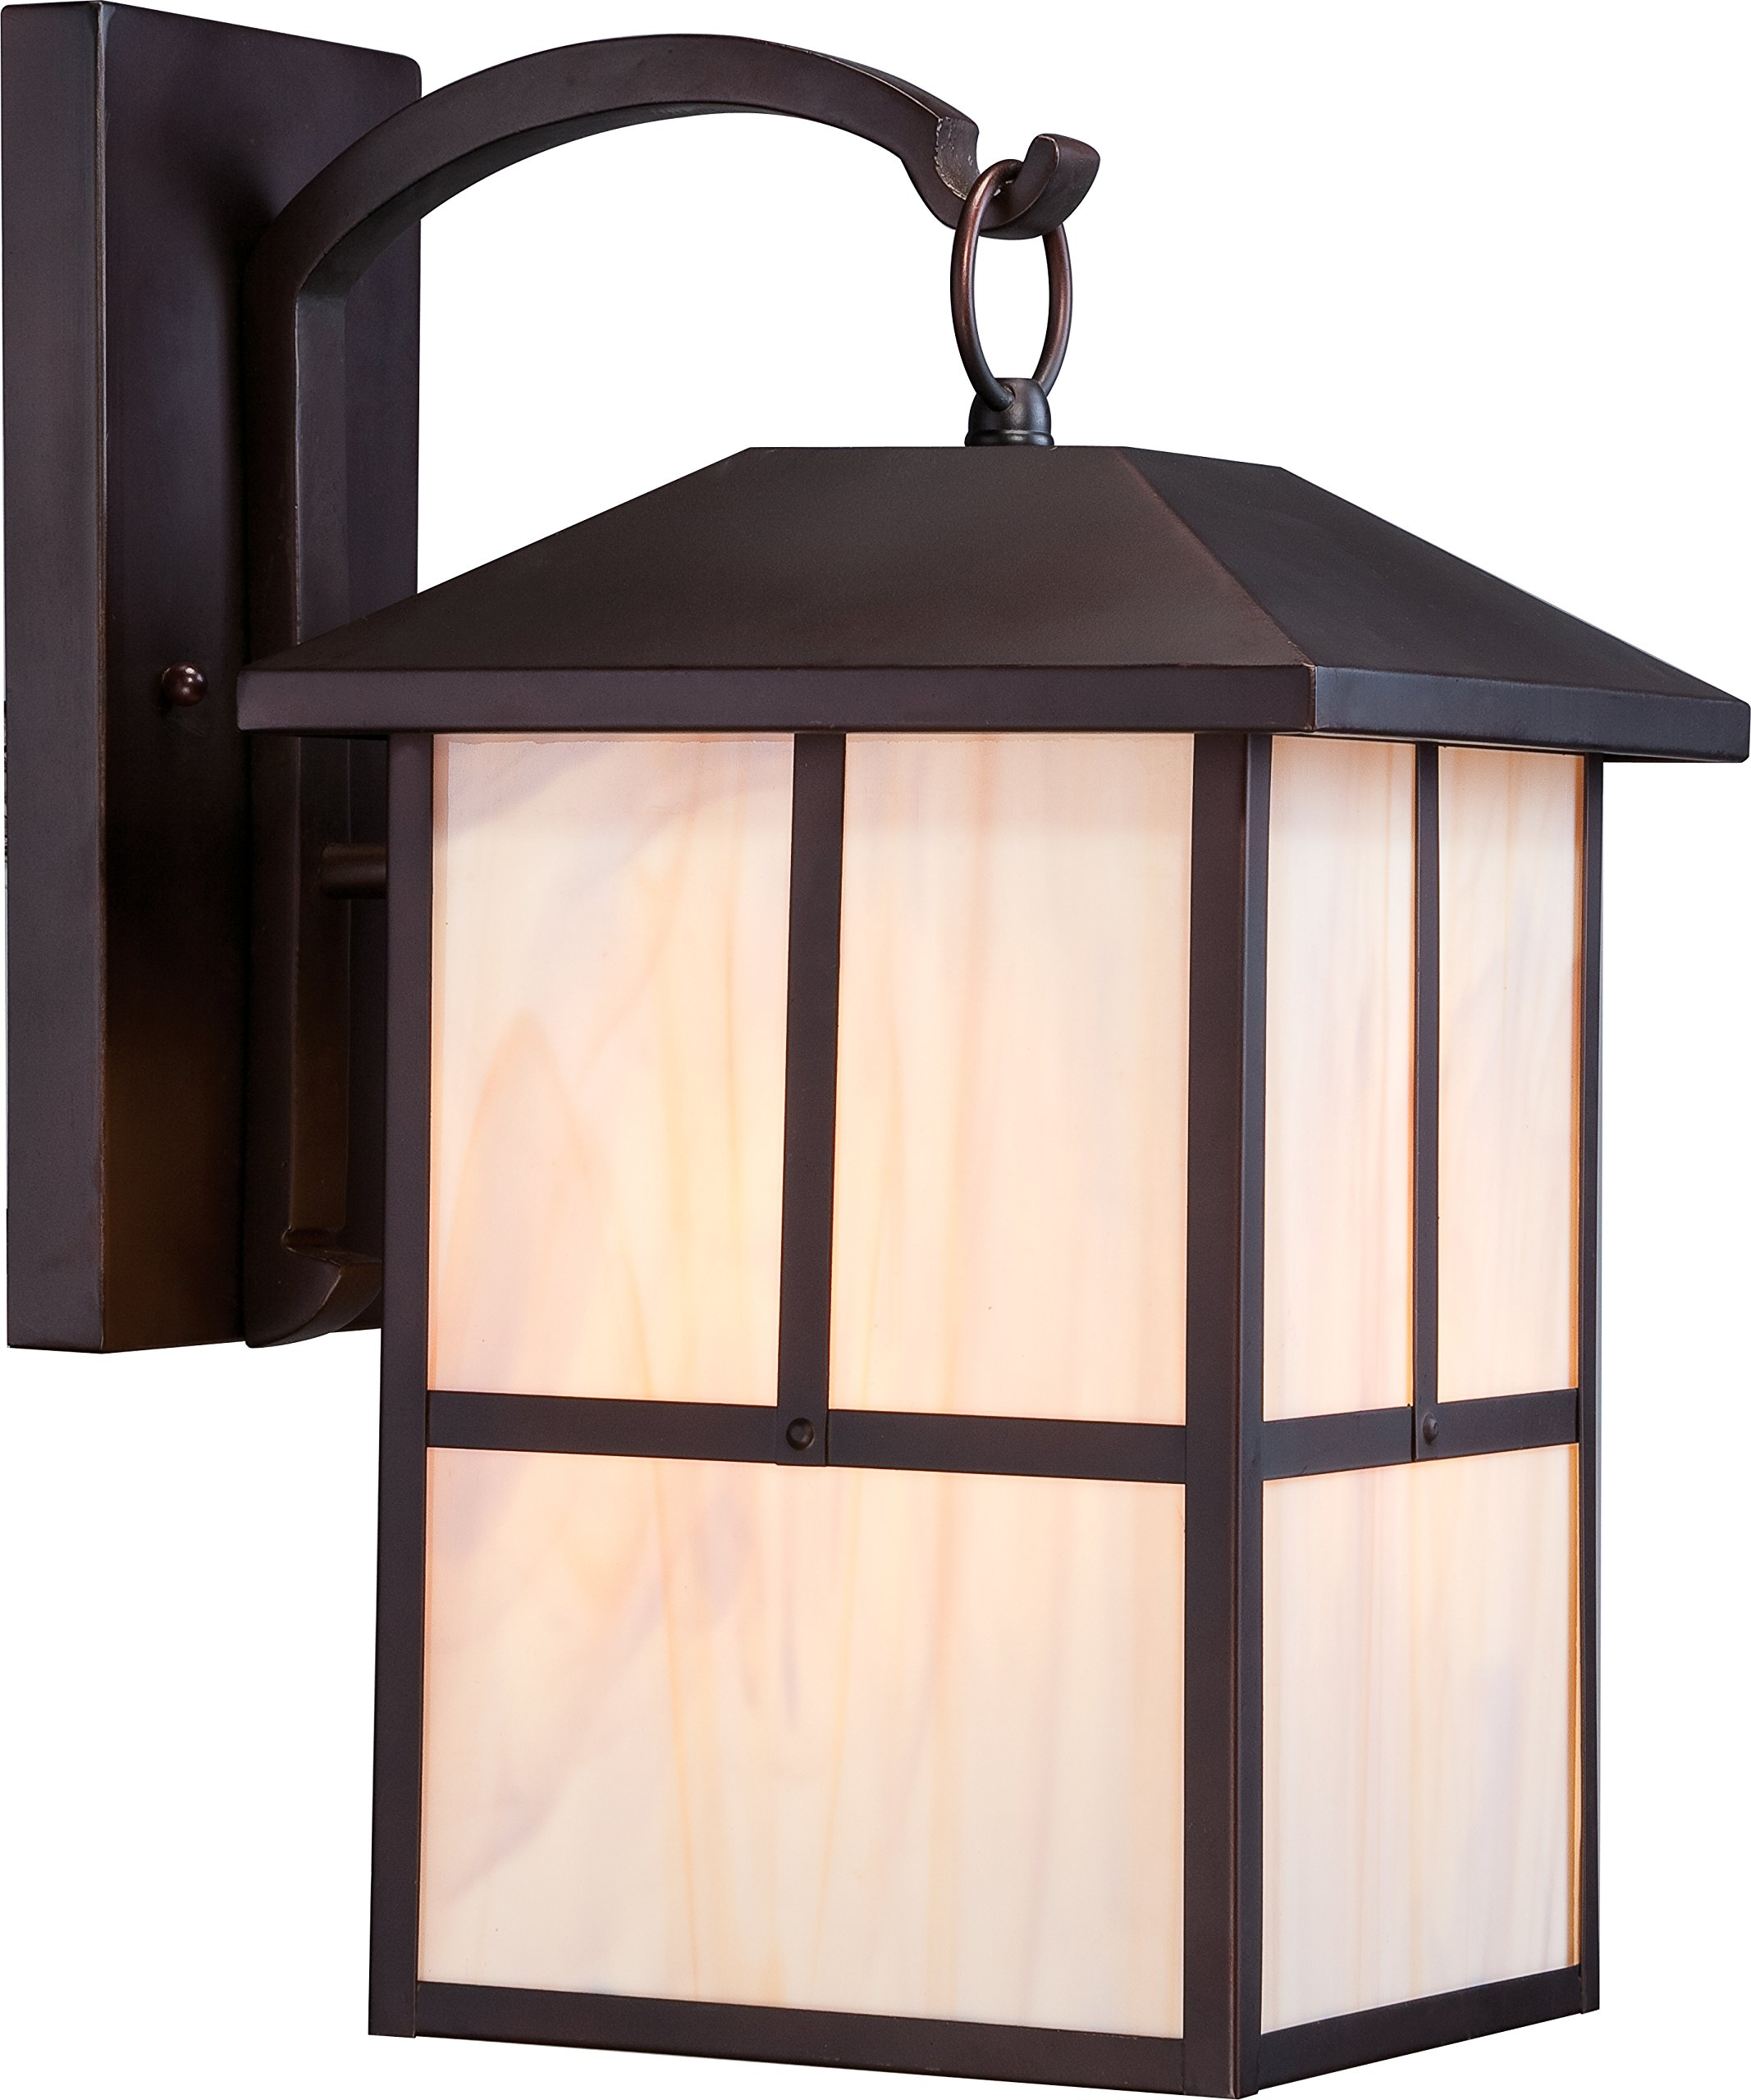 Nuvo Lighting 60/5673 Tanner Large One Light Wall Lantern 100-watt A19 Outdoor Porch and Patio Lighting with Honey Stained Glass, Claret Bronze by Nuvo Lighting